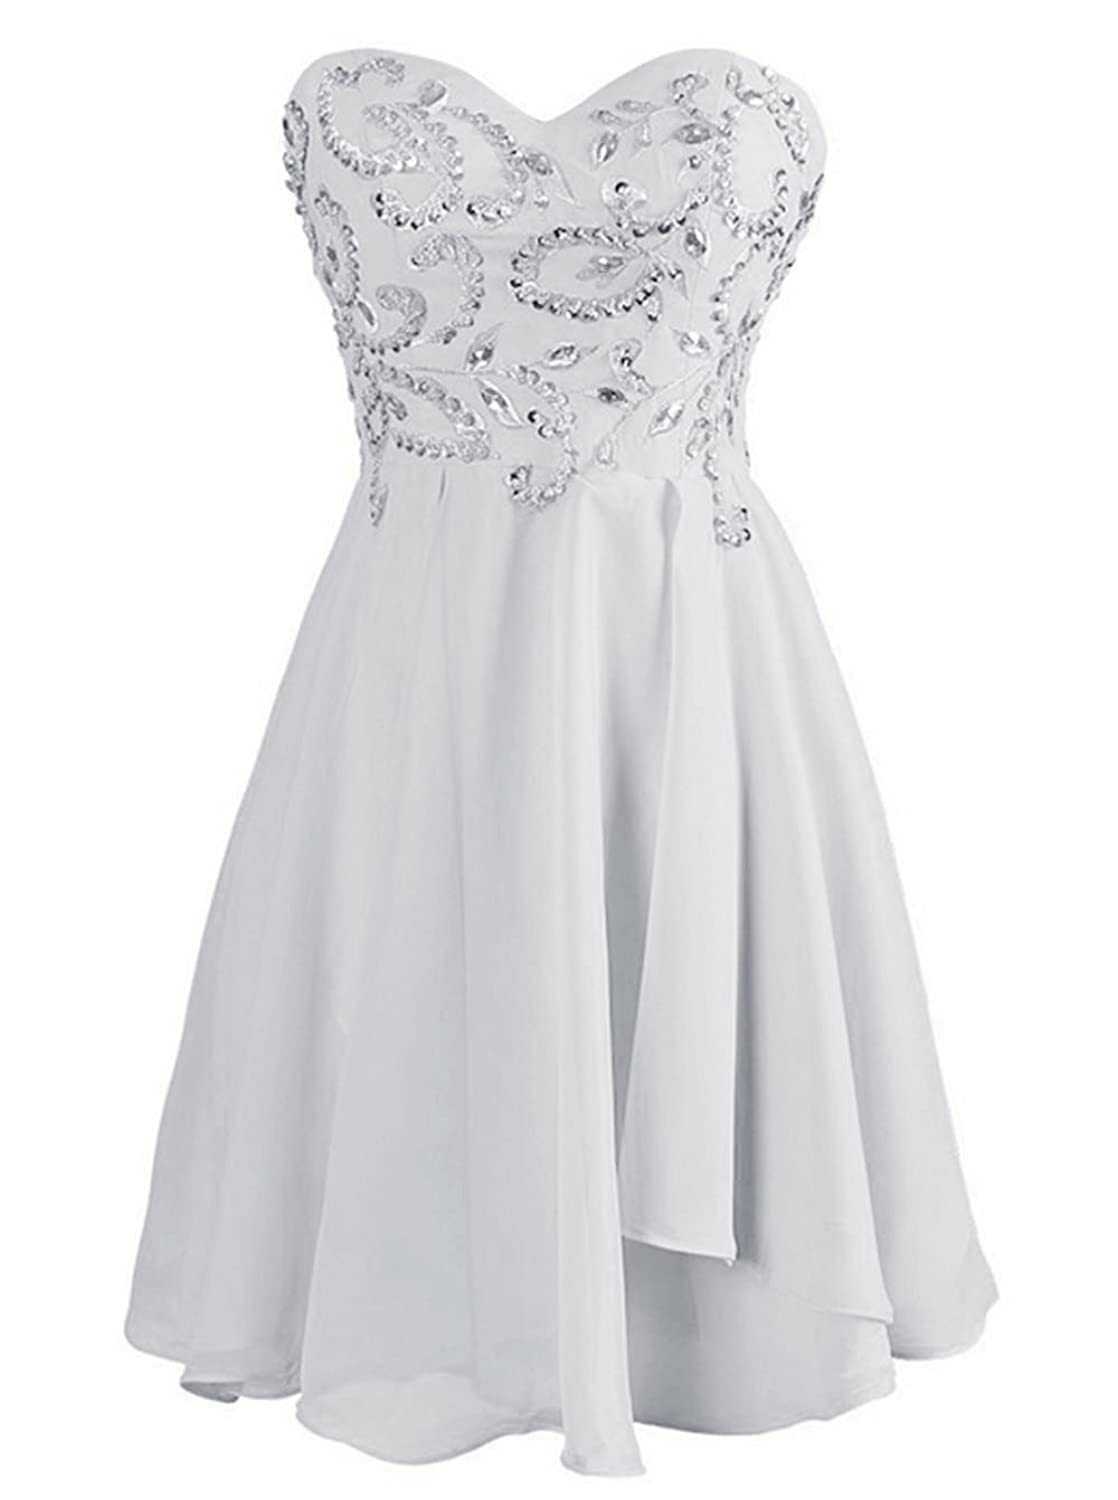 Poplarboy Sweetheart Sequins Prom Gown Short Bridesmaid Homecoming Dress